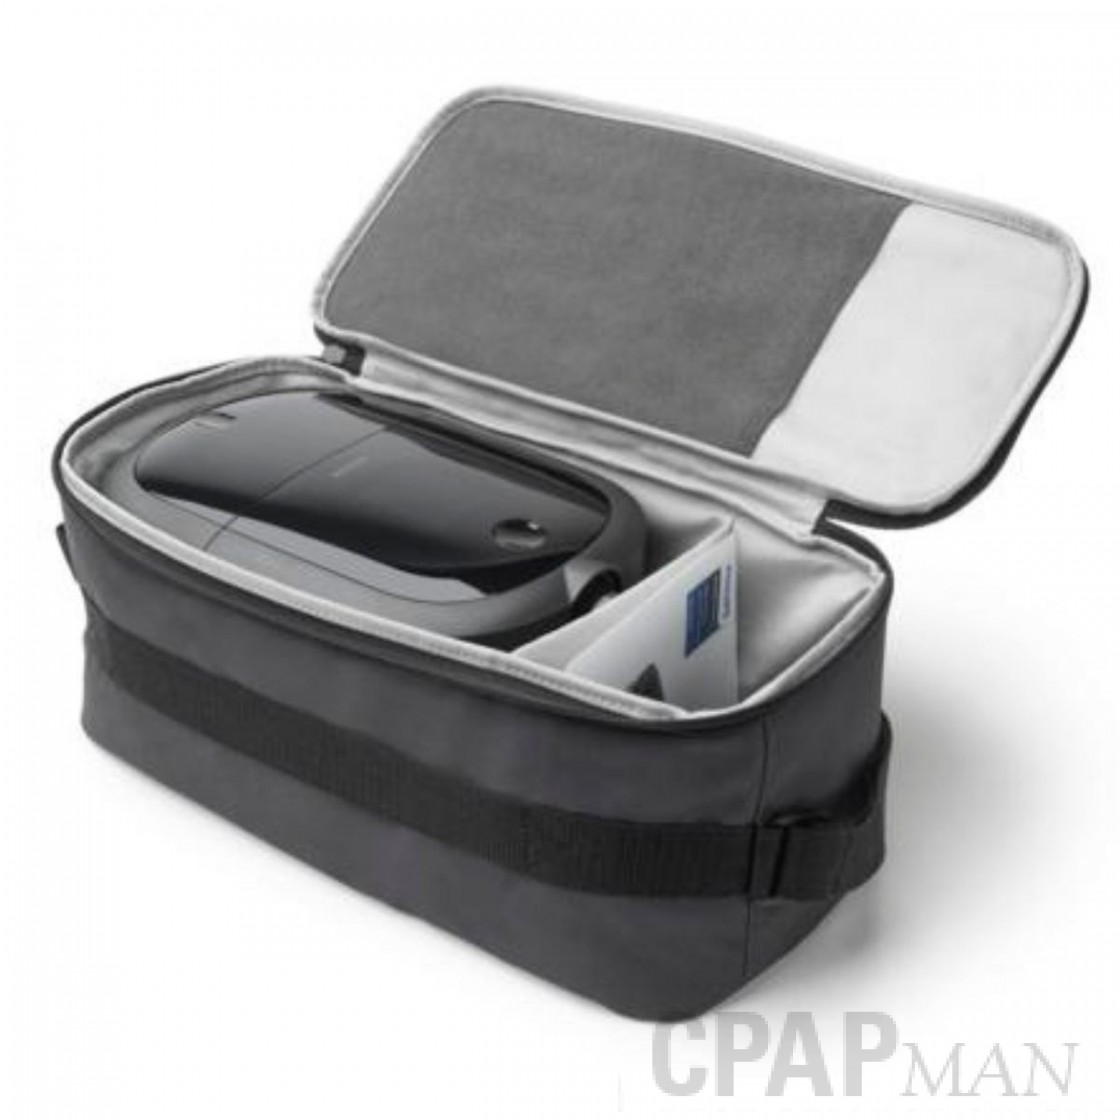 DreamStation 2 Auto CPAP Advance Travel Case - Philips